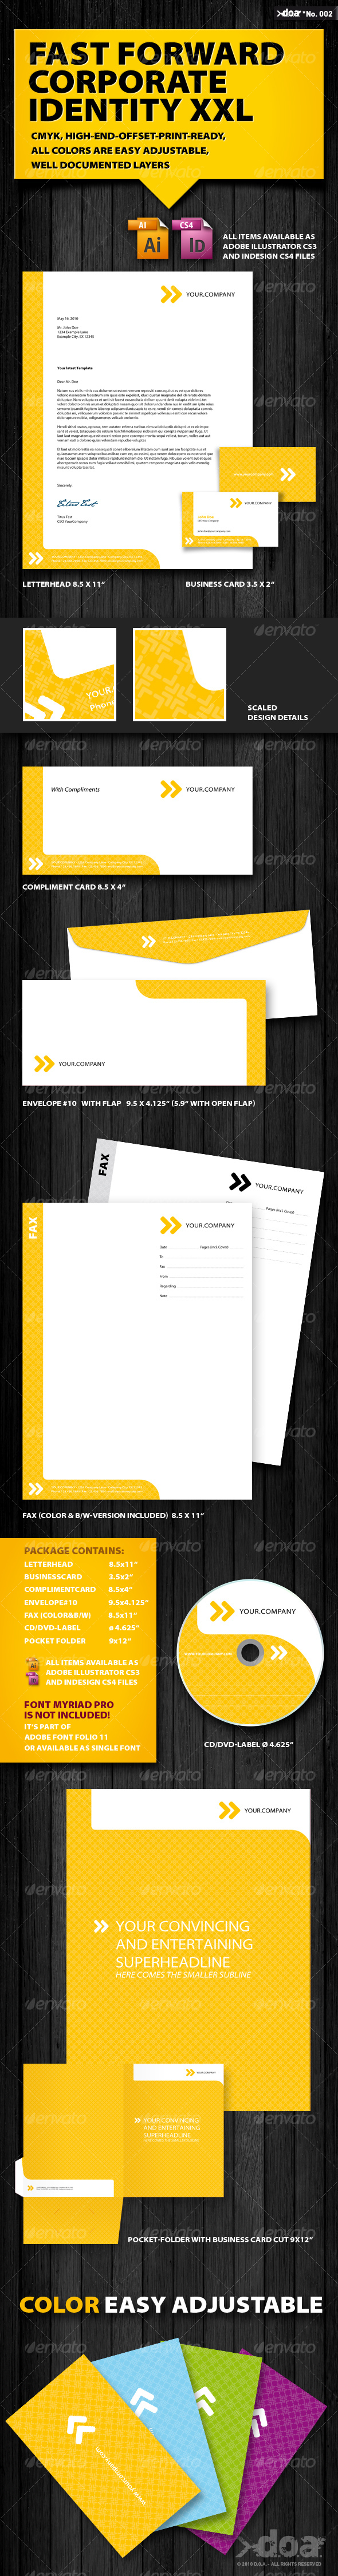 Fast Forward - Corporate Identity - Stationery Print Templates